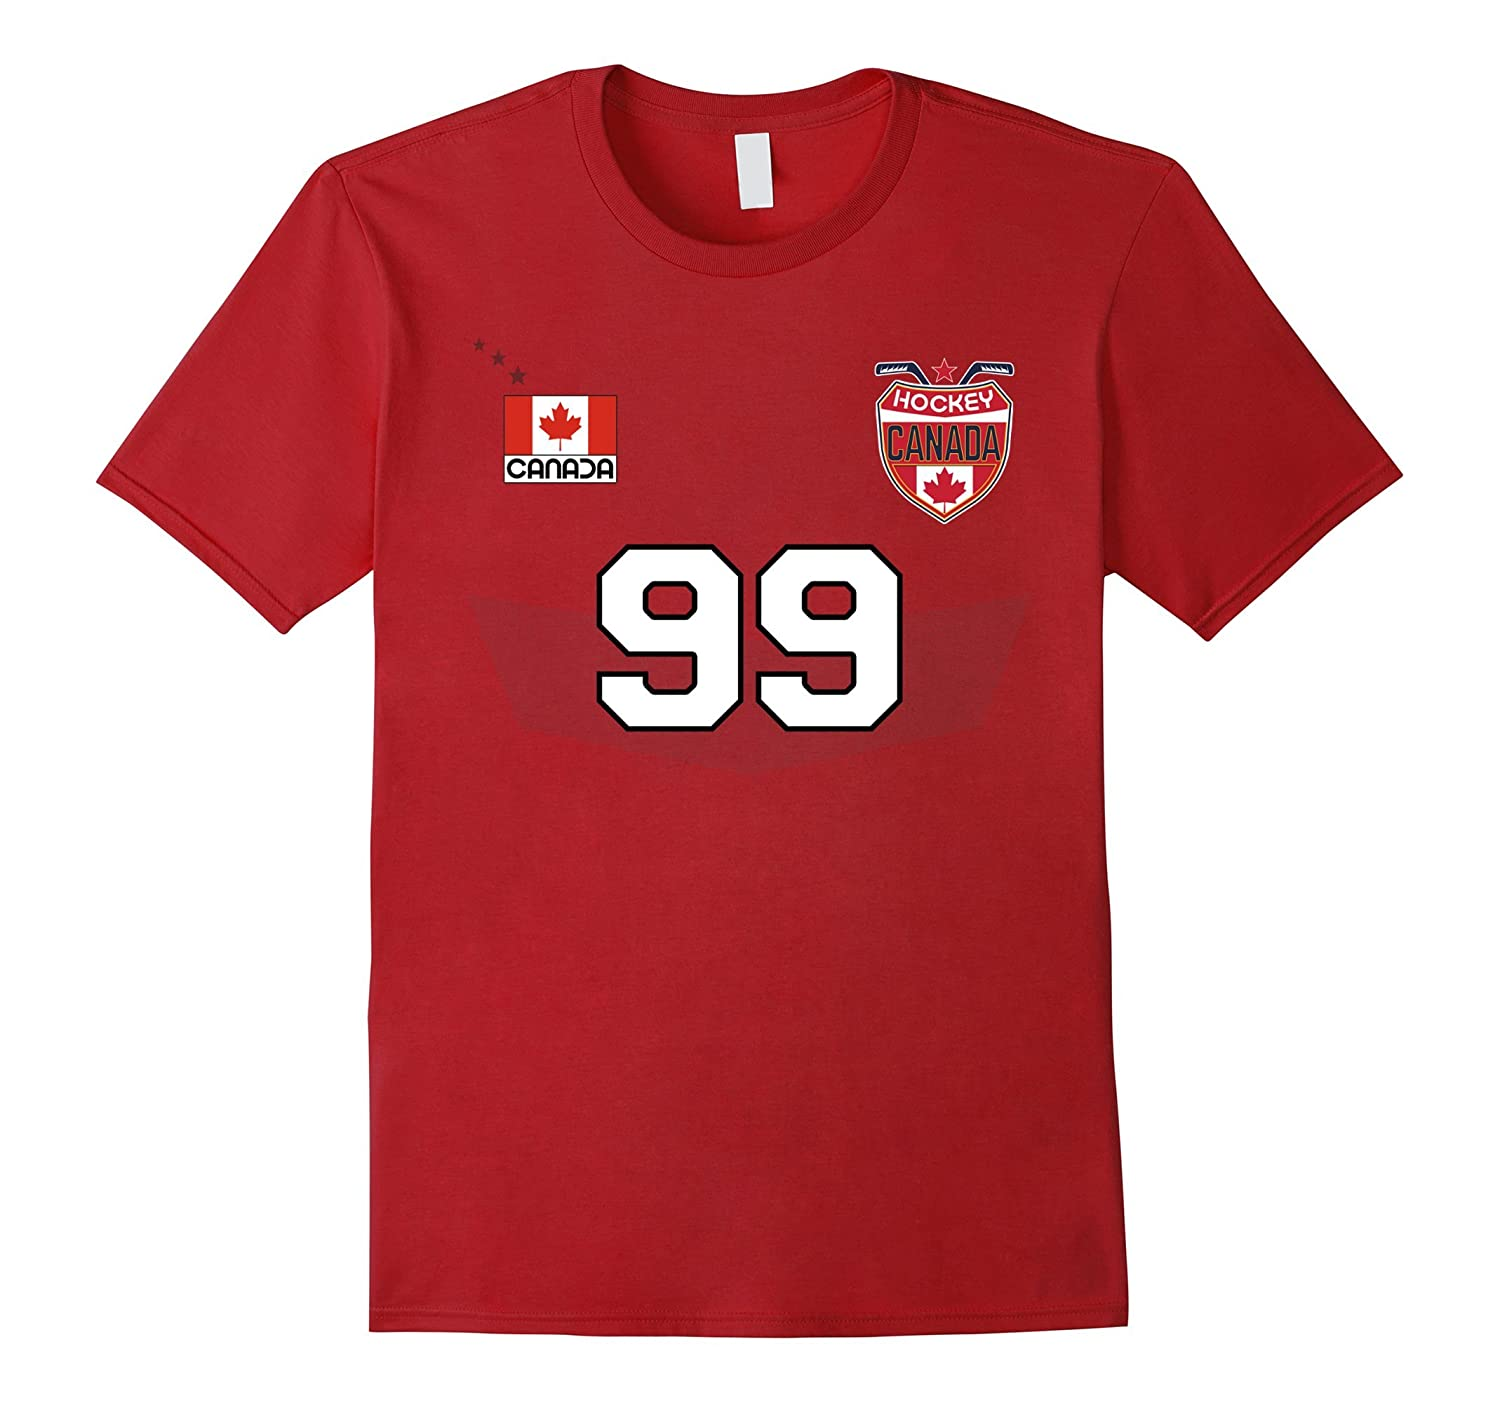 Fanmade Canada Hockey Team T Shirt With Number 99 ANZ